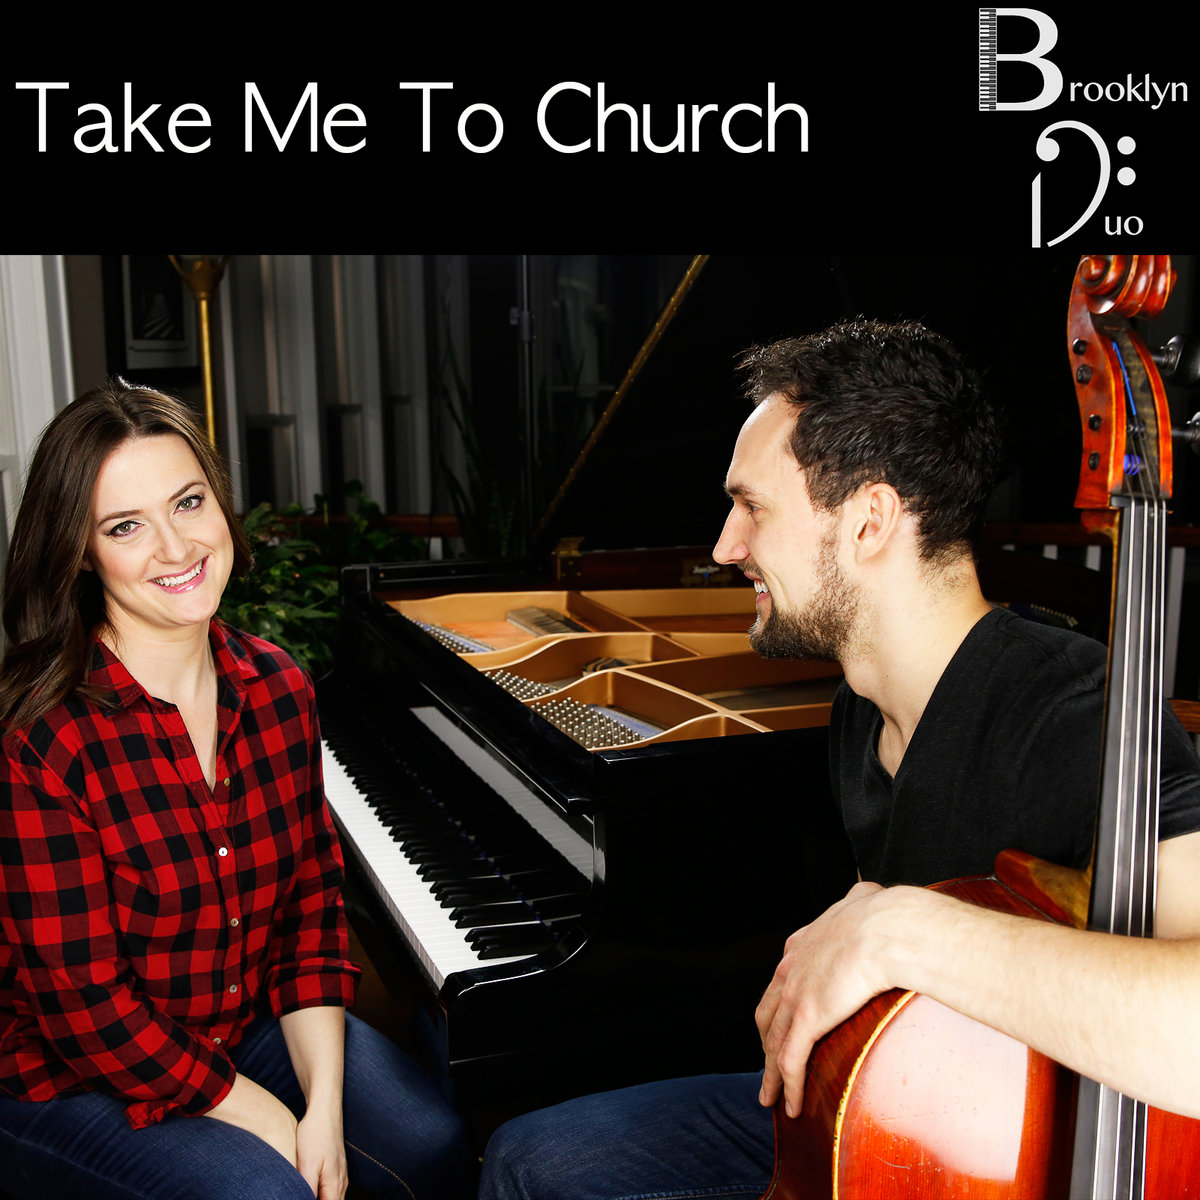 Take me to church hozier cover brooklyn duo